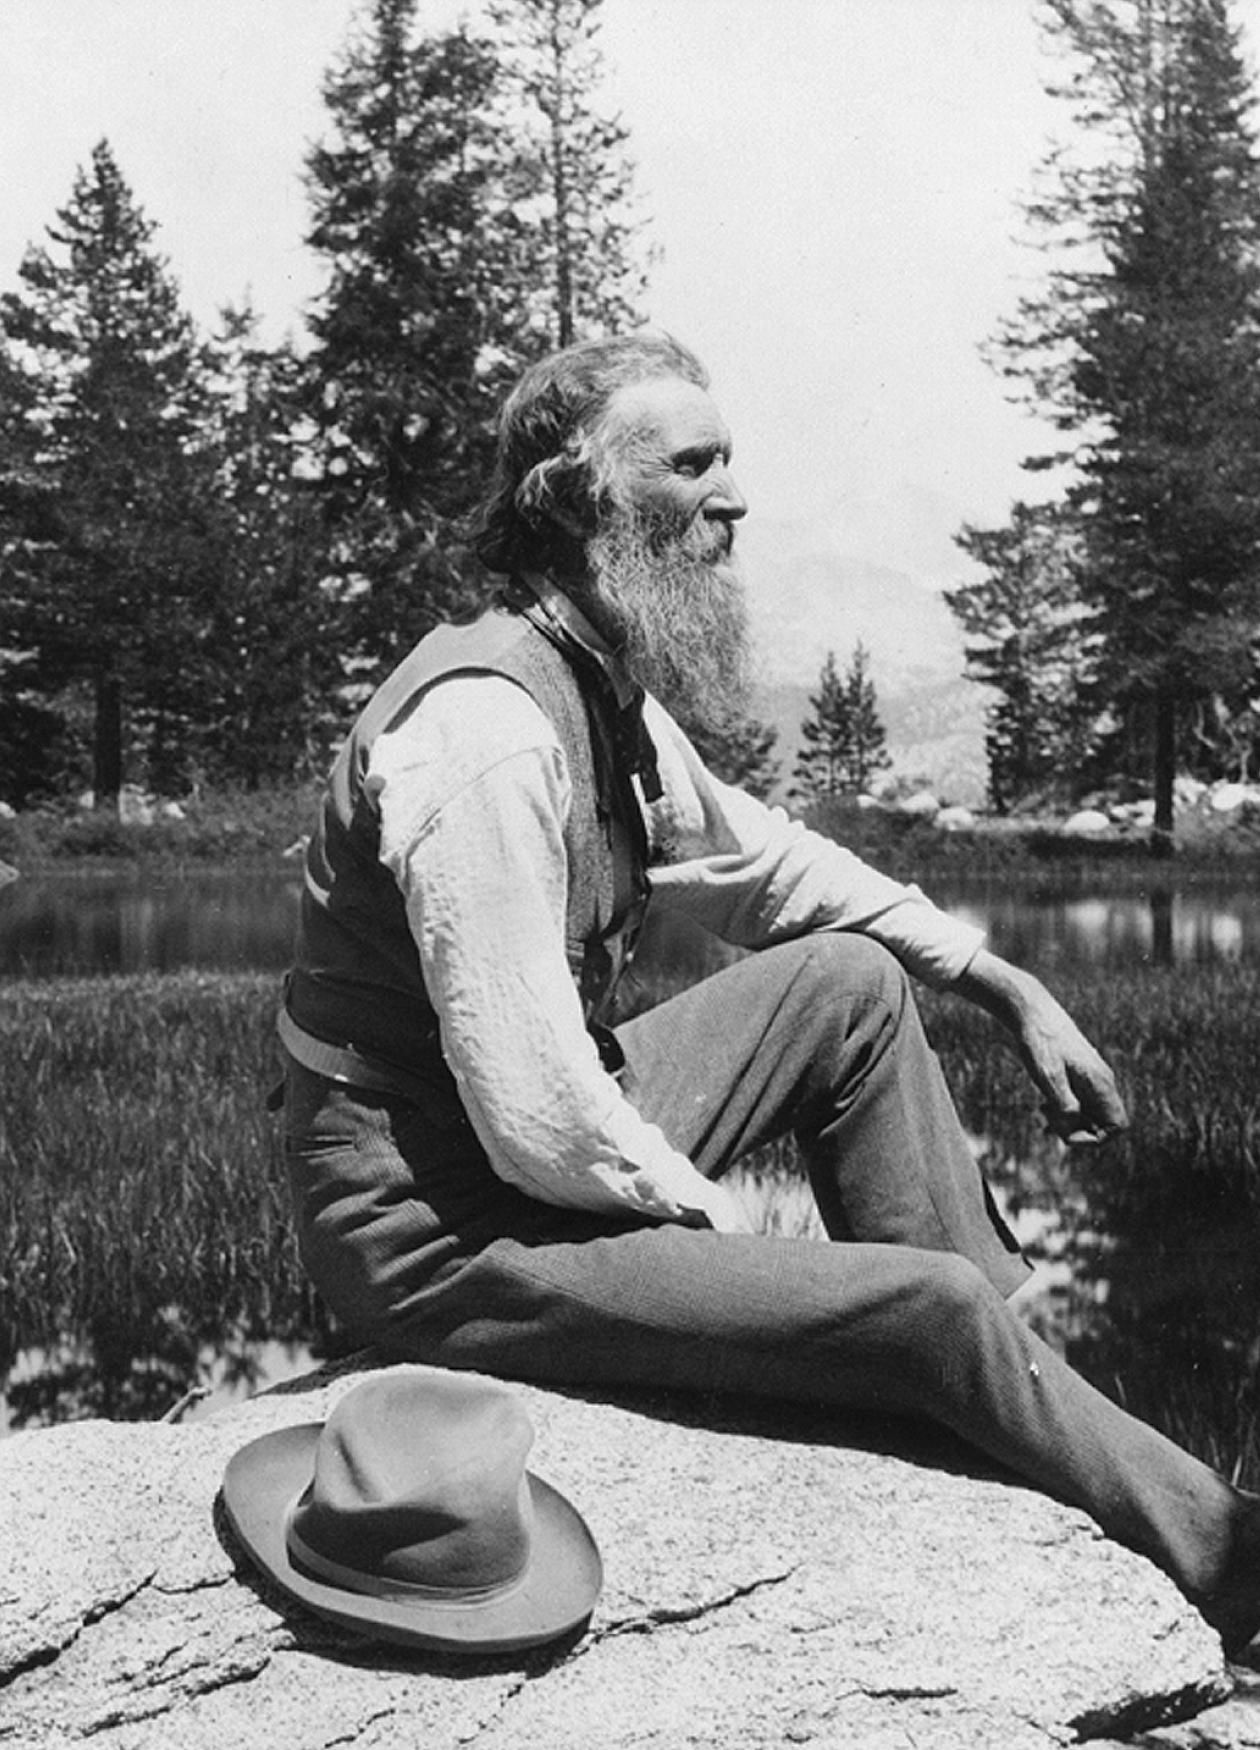 Muir sitting on a rock next to a lake, with a long gray beard, hat resting next to him